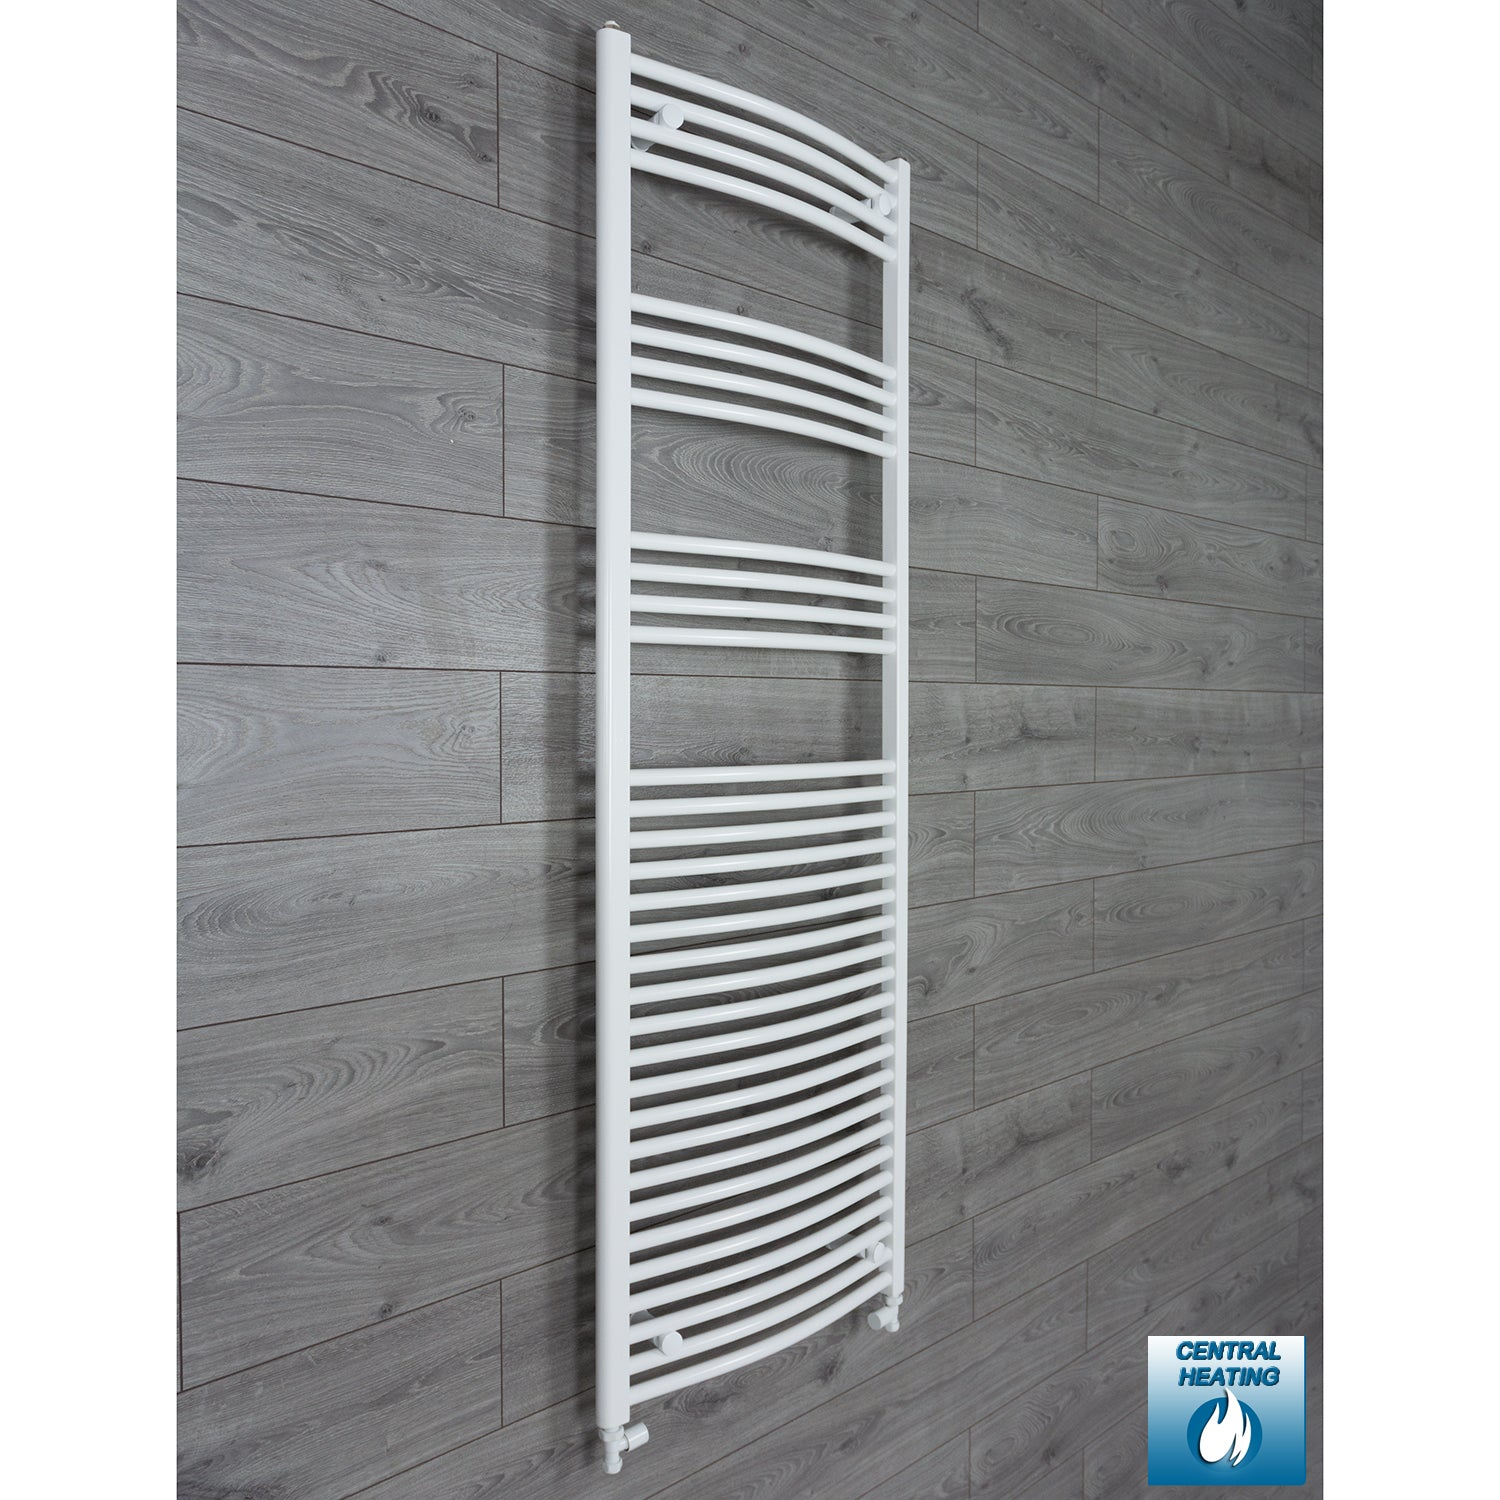 1800 mm High 600 mm Wide Heated Curved Towel Rail Radiator White Central heating straight valves connection